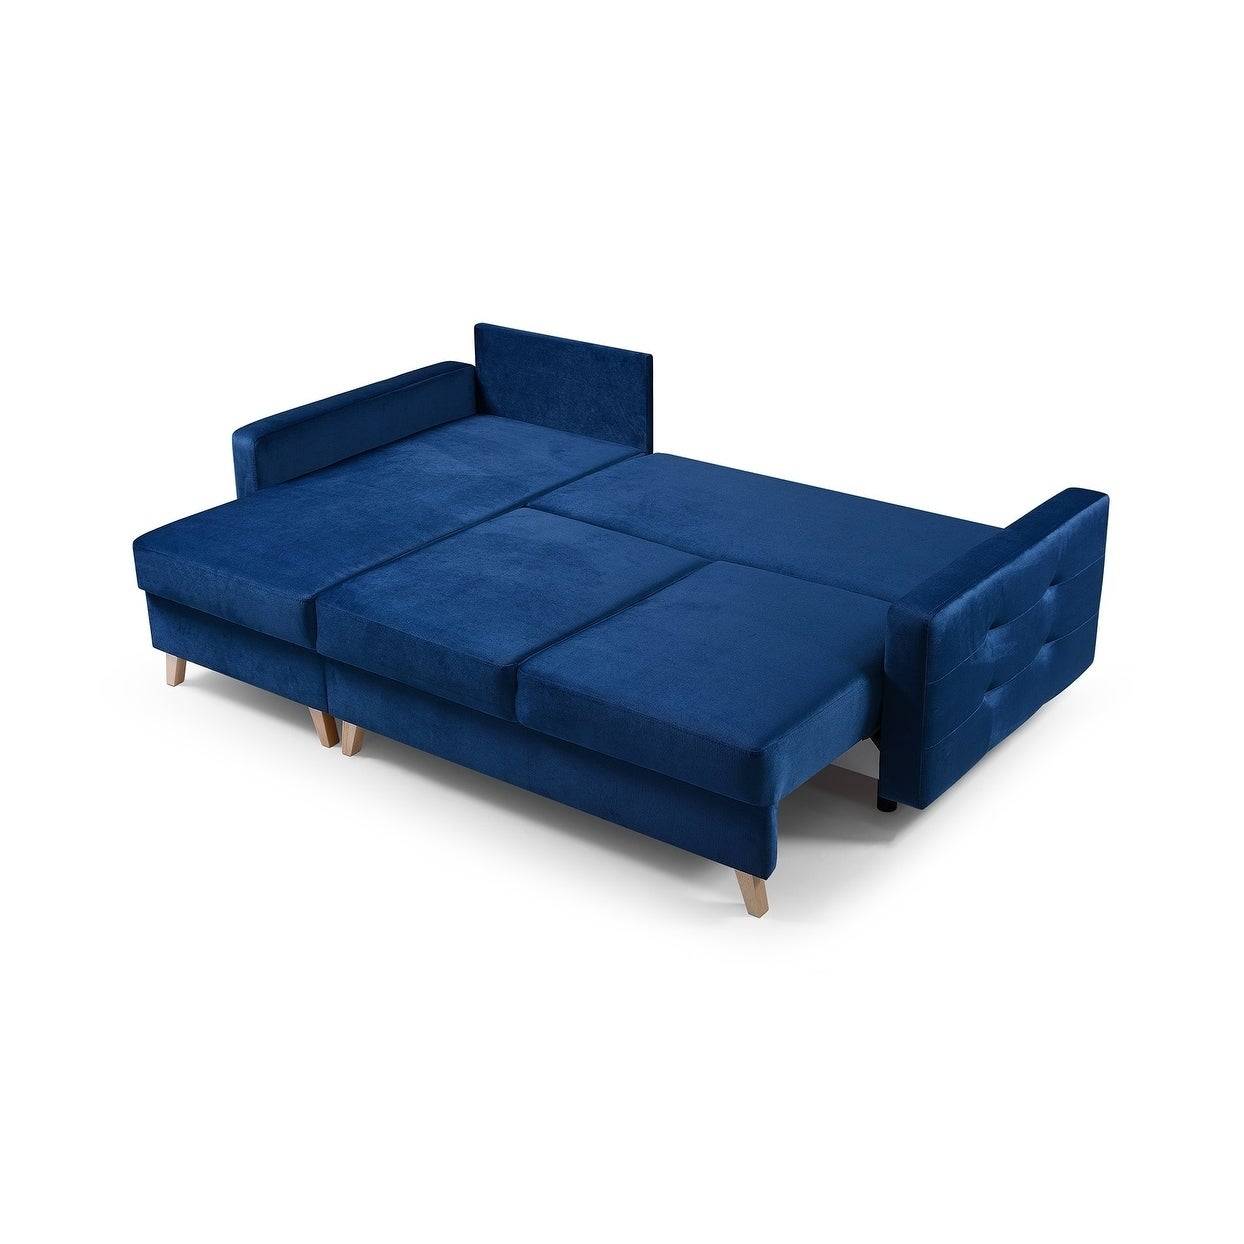 Vegas Futon Sectional Sofa Bed Queen Sleeper With Storage On Free Shipping Today Com 23558765